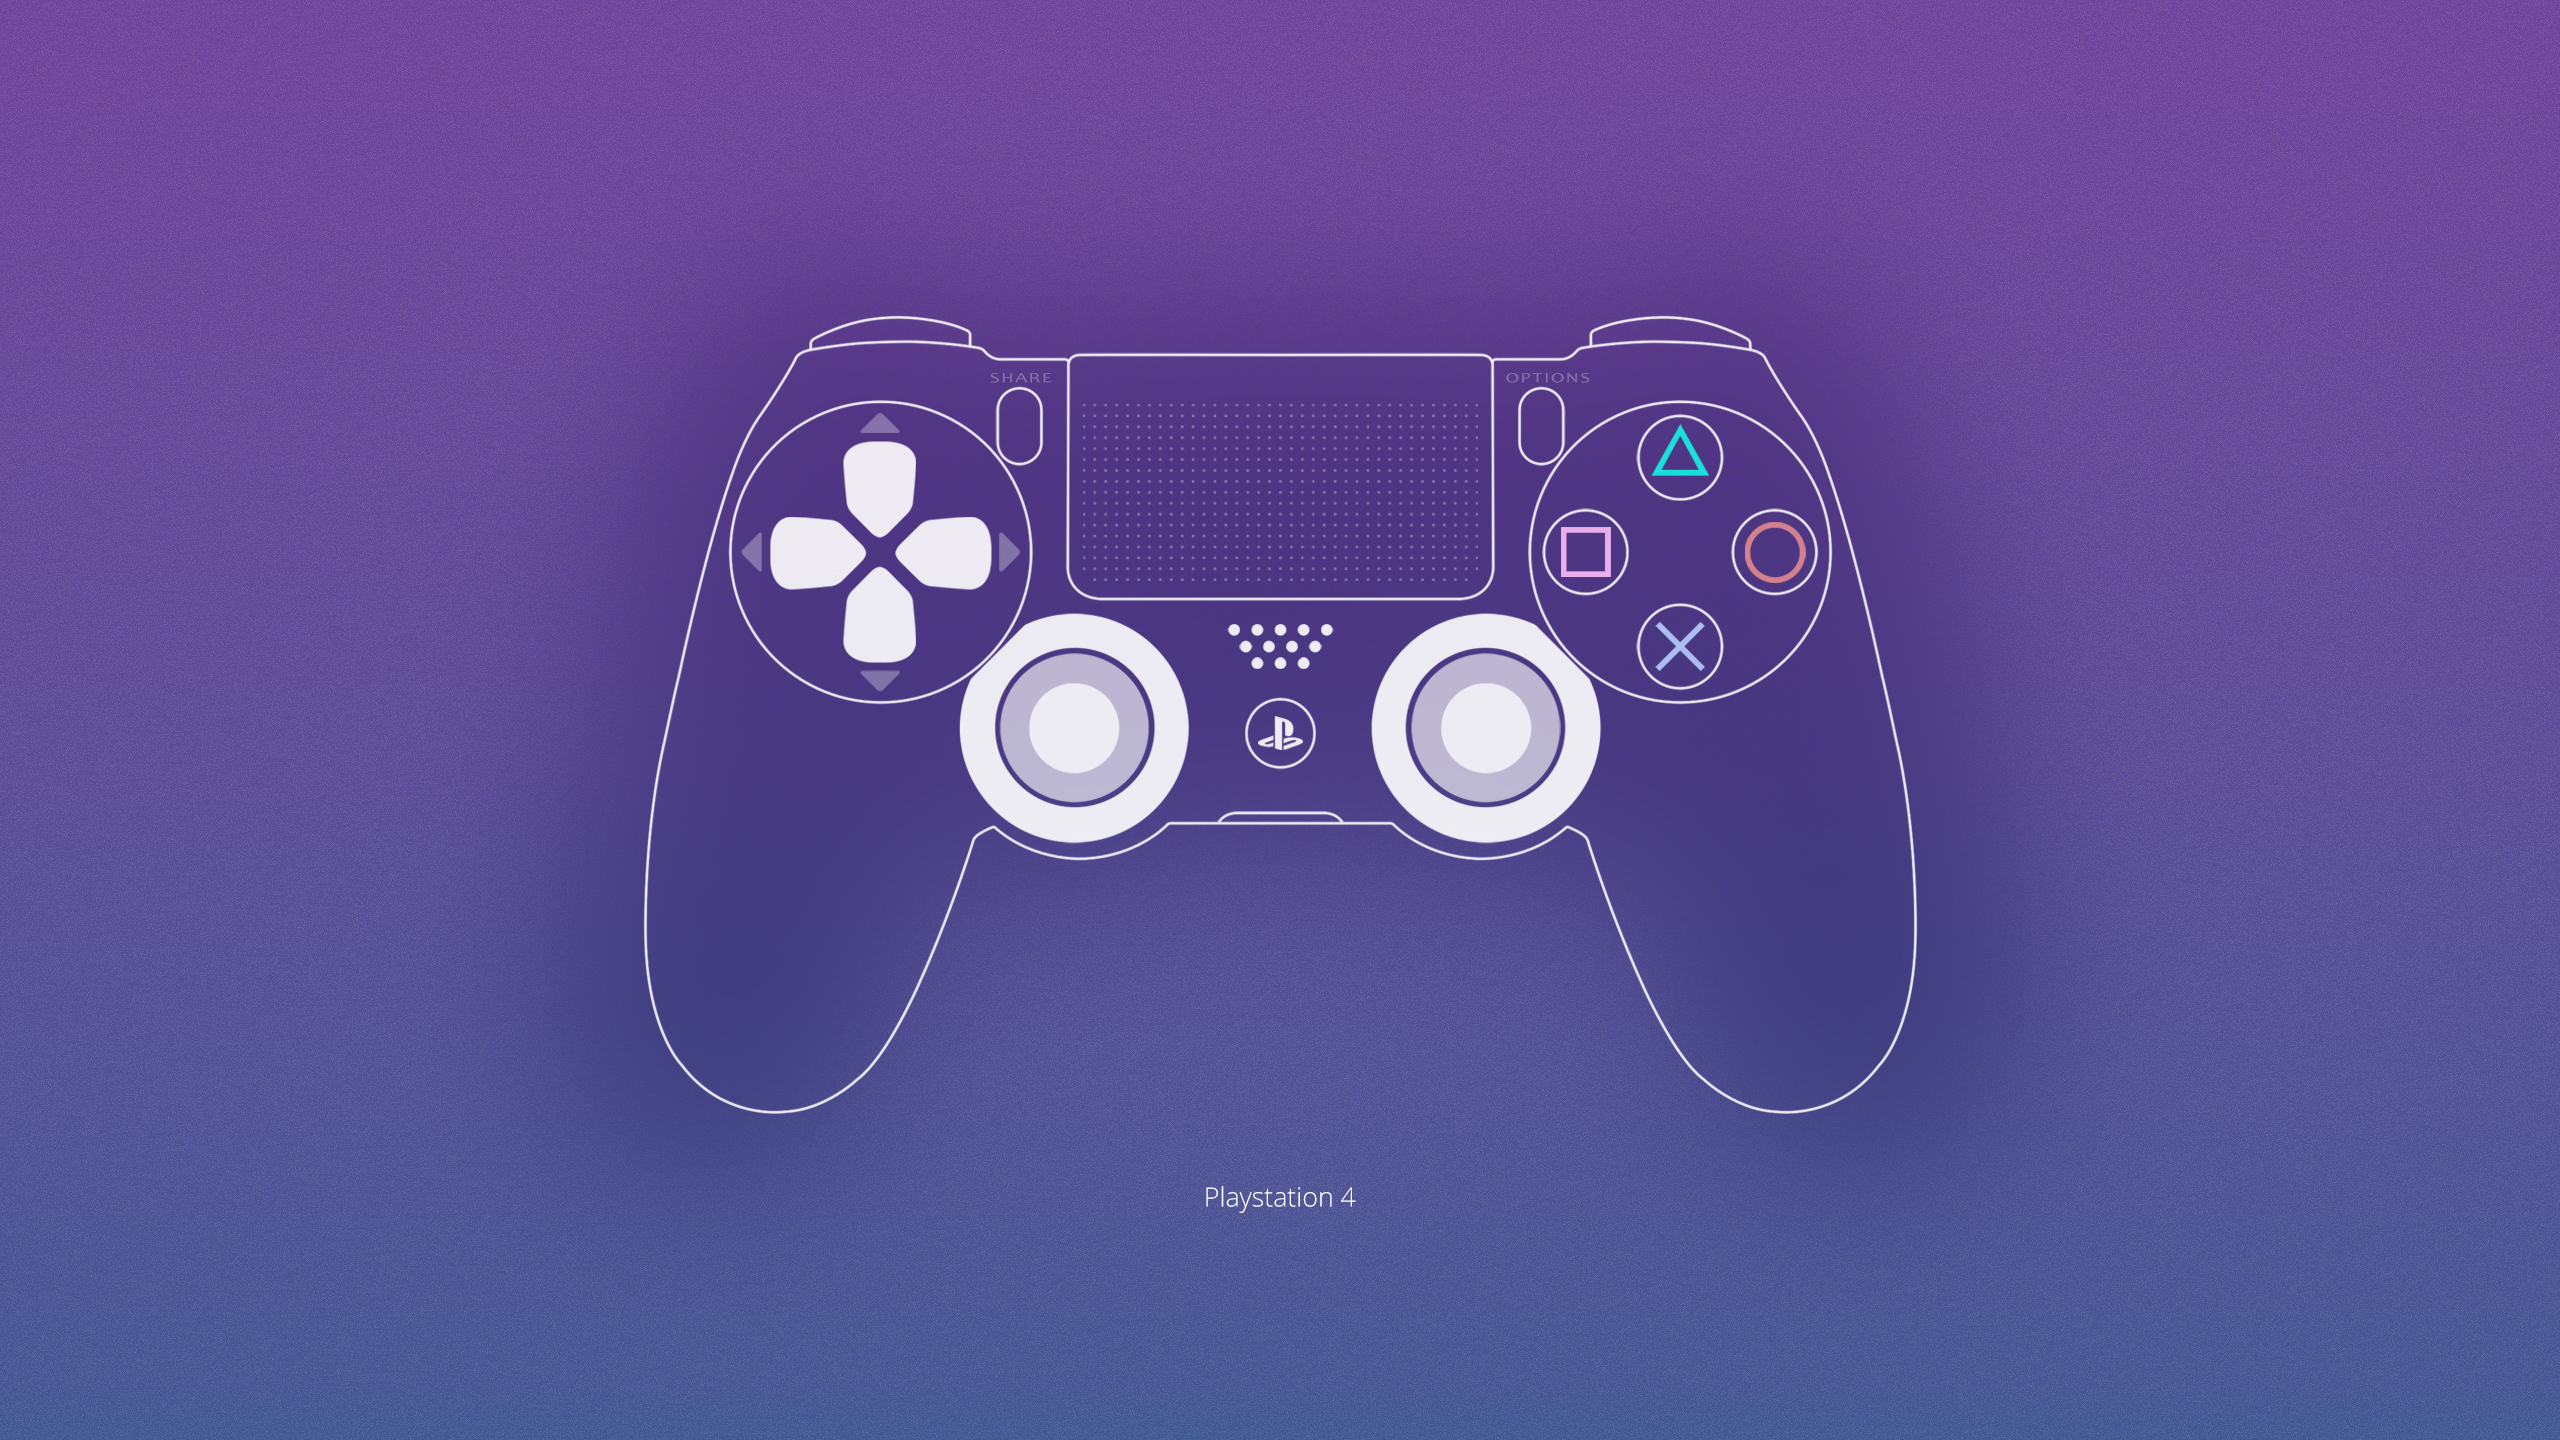 Playstation 4 Wallpaper by ljdesigner 2560x1440